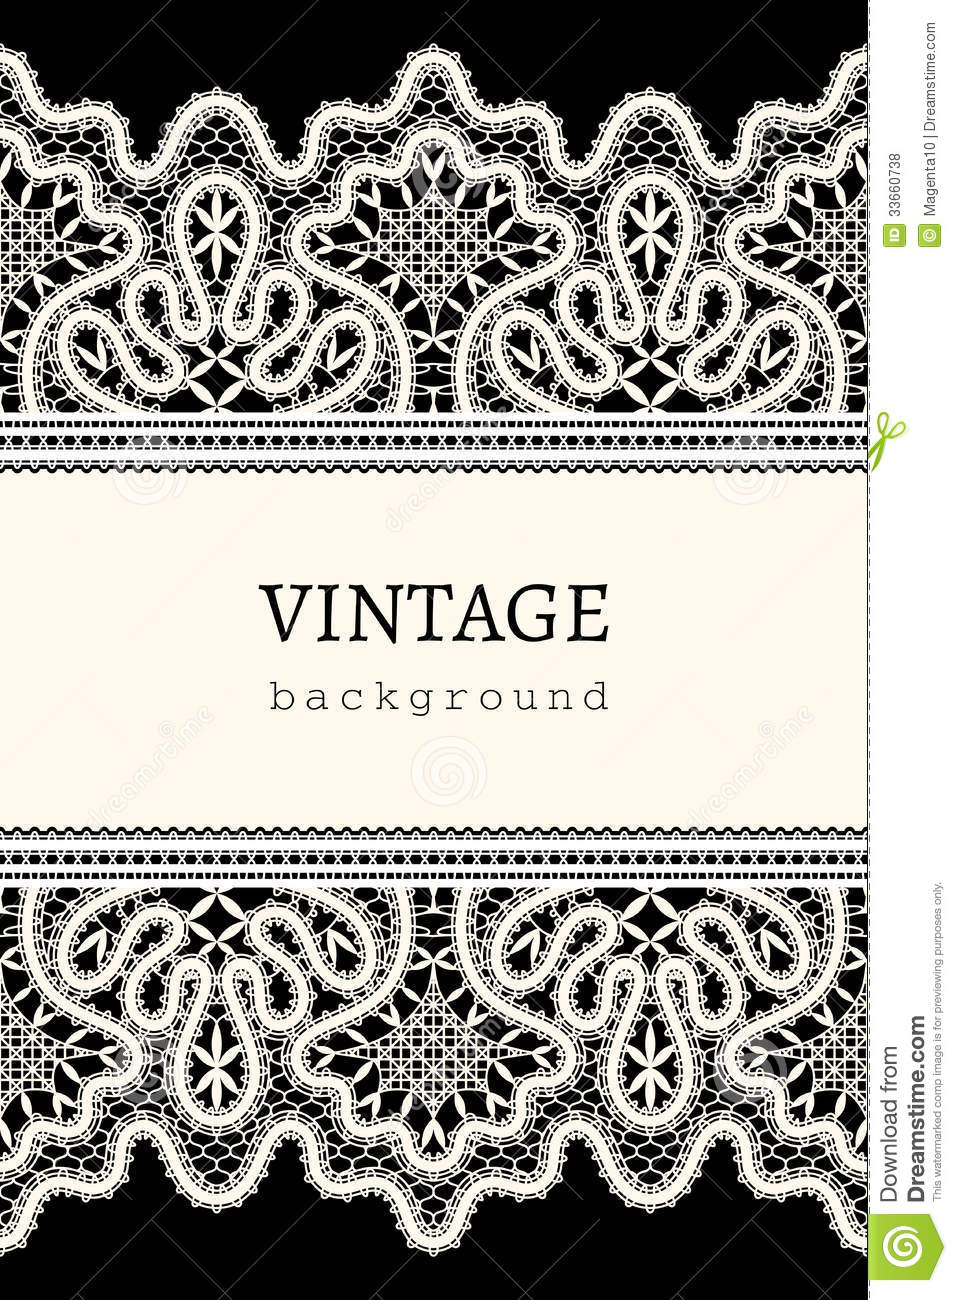 69e93f15ad Vintage lace background stock vector. Illustration of background ...